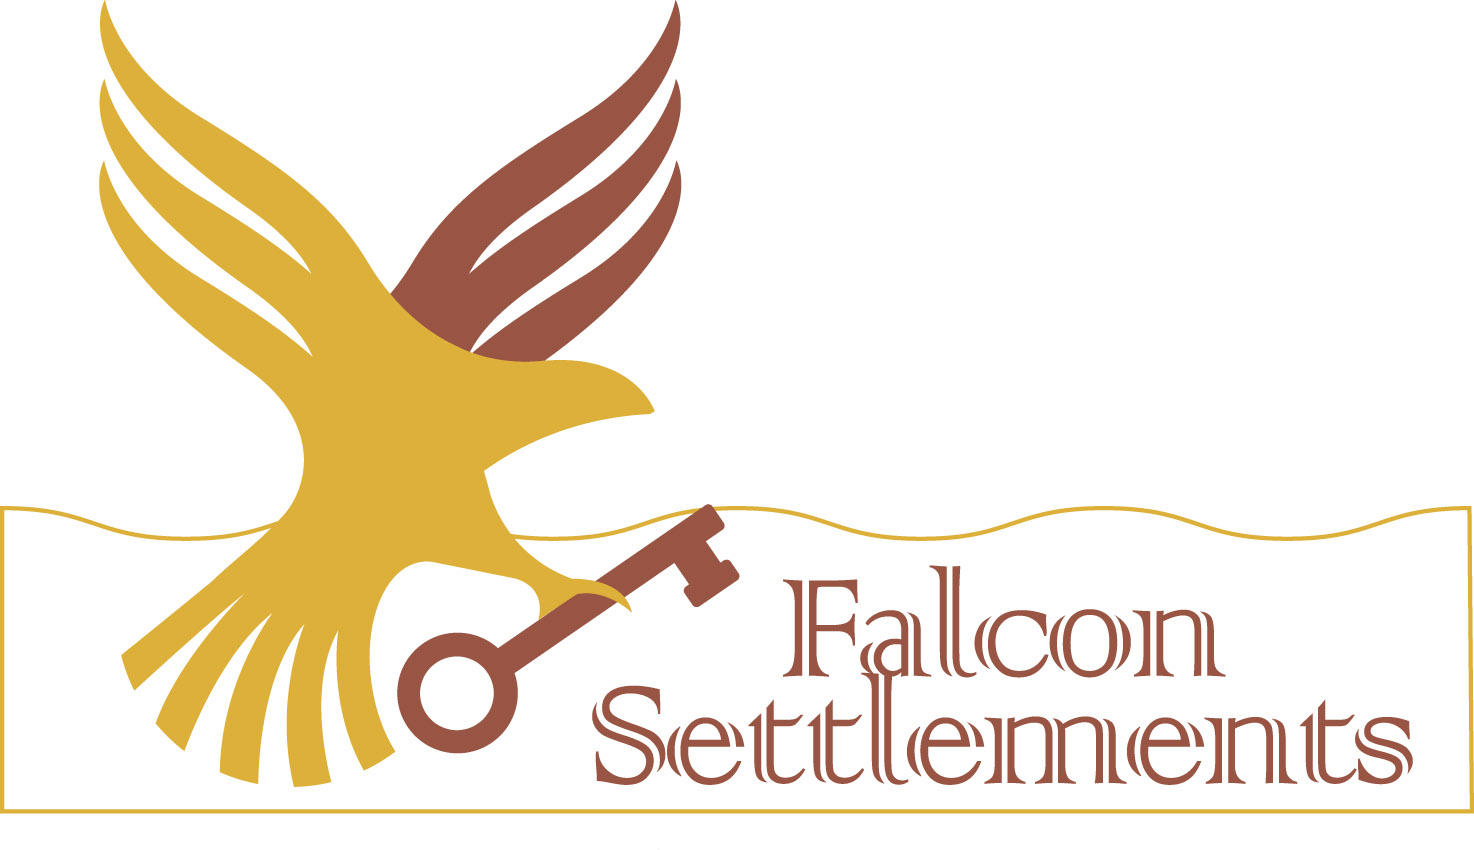 Illustration of a Falcon in flight holding a key over the words 'Falcon Settlements'